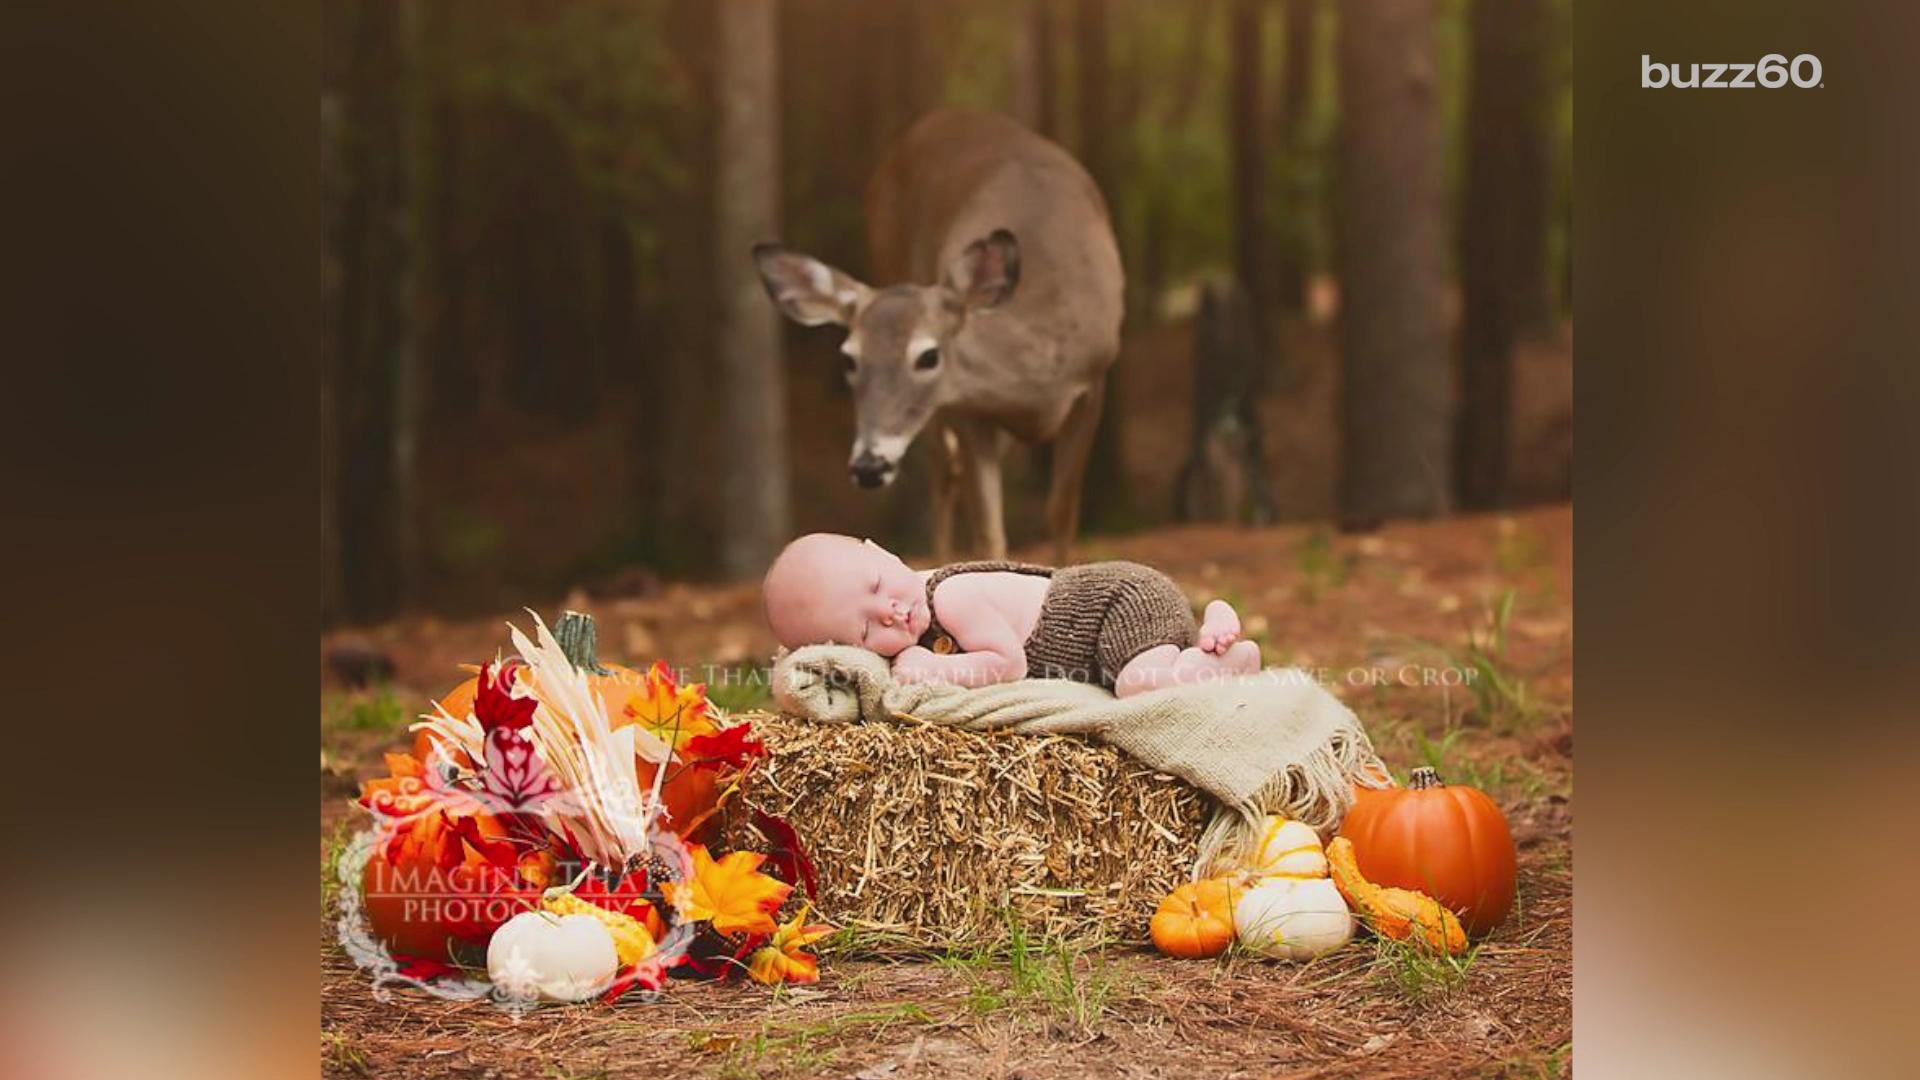 Deer photobombs newborn's forest photo shoot